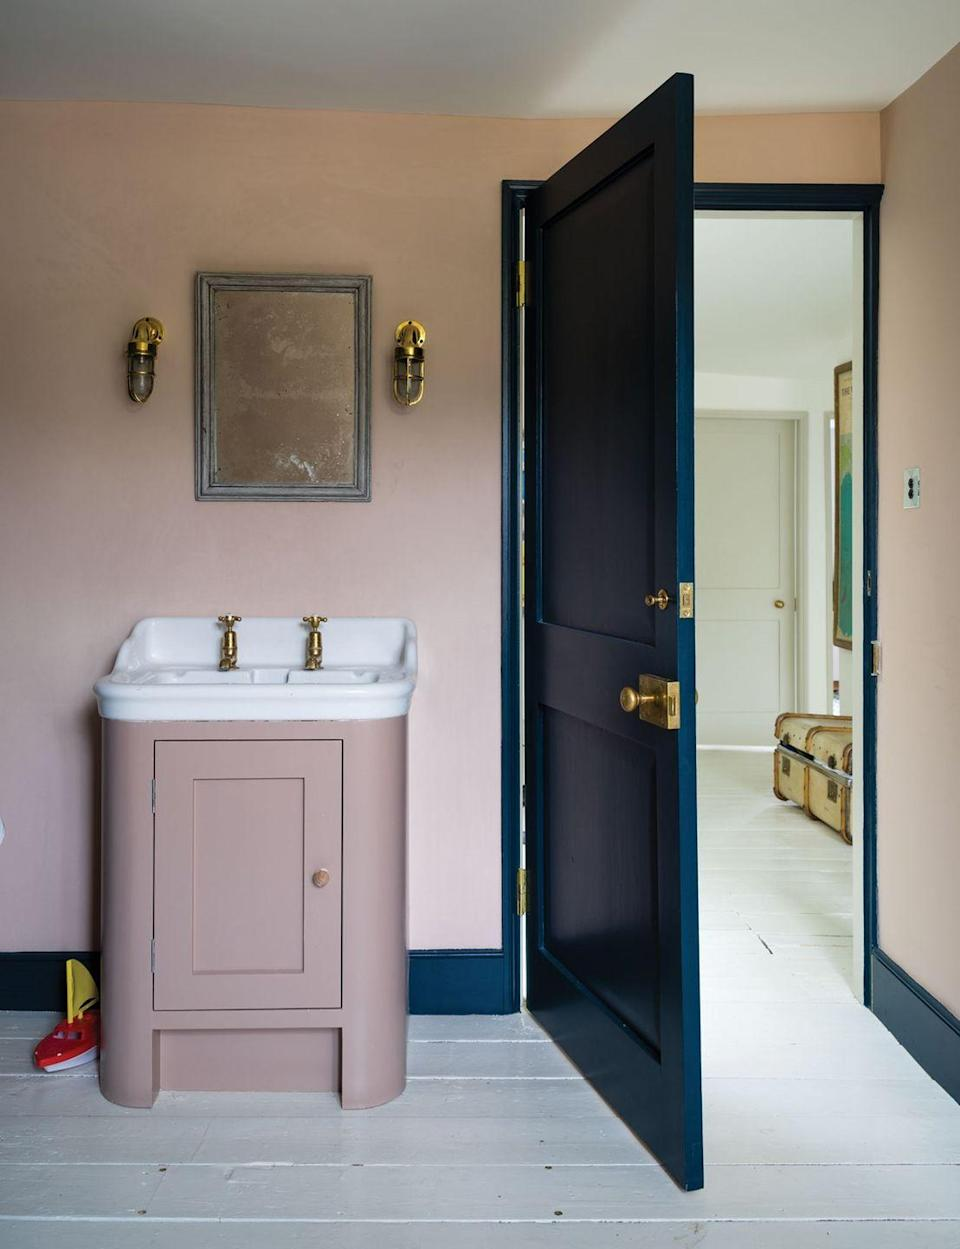 """<p>Soft pink and a strong midnight blue create a vintage feel, especially when used in homes with period features. Whilst a lighter blue would make this scheme fairly saccharine, suitable for a <a href=""""https://www.housebeautiful.com/uk/decorate/kitchen/g423/best-kitchen-design-trends/"""" rel=""""nofollow noopener"""" target=""""_blank"""" data-ylk=""""slk:modern kitchen"""" class=""""link rapid-noclick-resp"""">modern kitchen</a> or bedroom, the inky tones of a dark blue create a more sophisticated look.</p><p>Pictured: <a href=""""https://go.redirectingat.com?id=127X1599956&url=https%3A%2F%2Fwww.farrow-ball.com%2Fpaint-colours%2Fpink-ground&sref=https%3A%2F%2Fwww.redonline.co.uk%2Finteriors%2Feasy-to-steal-ideas%2Fg37326104%2Fcolour-combinations%2F"""" rel=""""nofollow noopener"""" target=""""_blank"""" data-ylk=""""slk:Pink Ground"""" class=""""link rapid-noclick-resp"""">Pink Ground</a> and <a href=""""https://go.redirectingat.com?id=127X1599956&url=https%3A%2F%2Fwww.farrow-ball.com%2Fpaint-colours%2Fhague-blue&sref=https%3A%2F%2Fwww.redonline.co.uk%2Finteriors%2Feasy-to-steal-ideas%2Fg37326104%2Fcolour-combinations%2F"""" rel=""""nofollow noopener"""" target=""""_blank"""" data-ylk=""""slk:Hague Blue"""" class=""""link rapid-noclick-resp"""">Hague Blue</a>, both by Farrow & Ball</p>"""